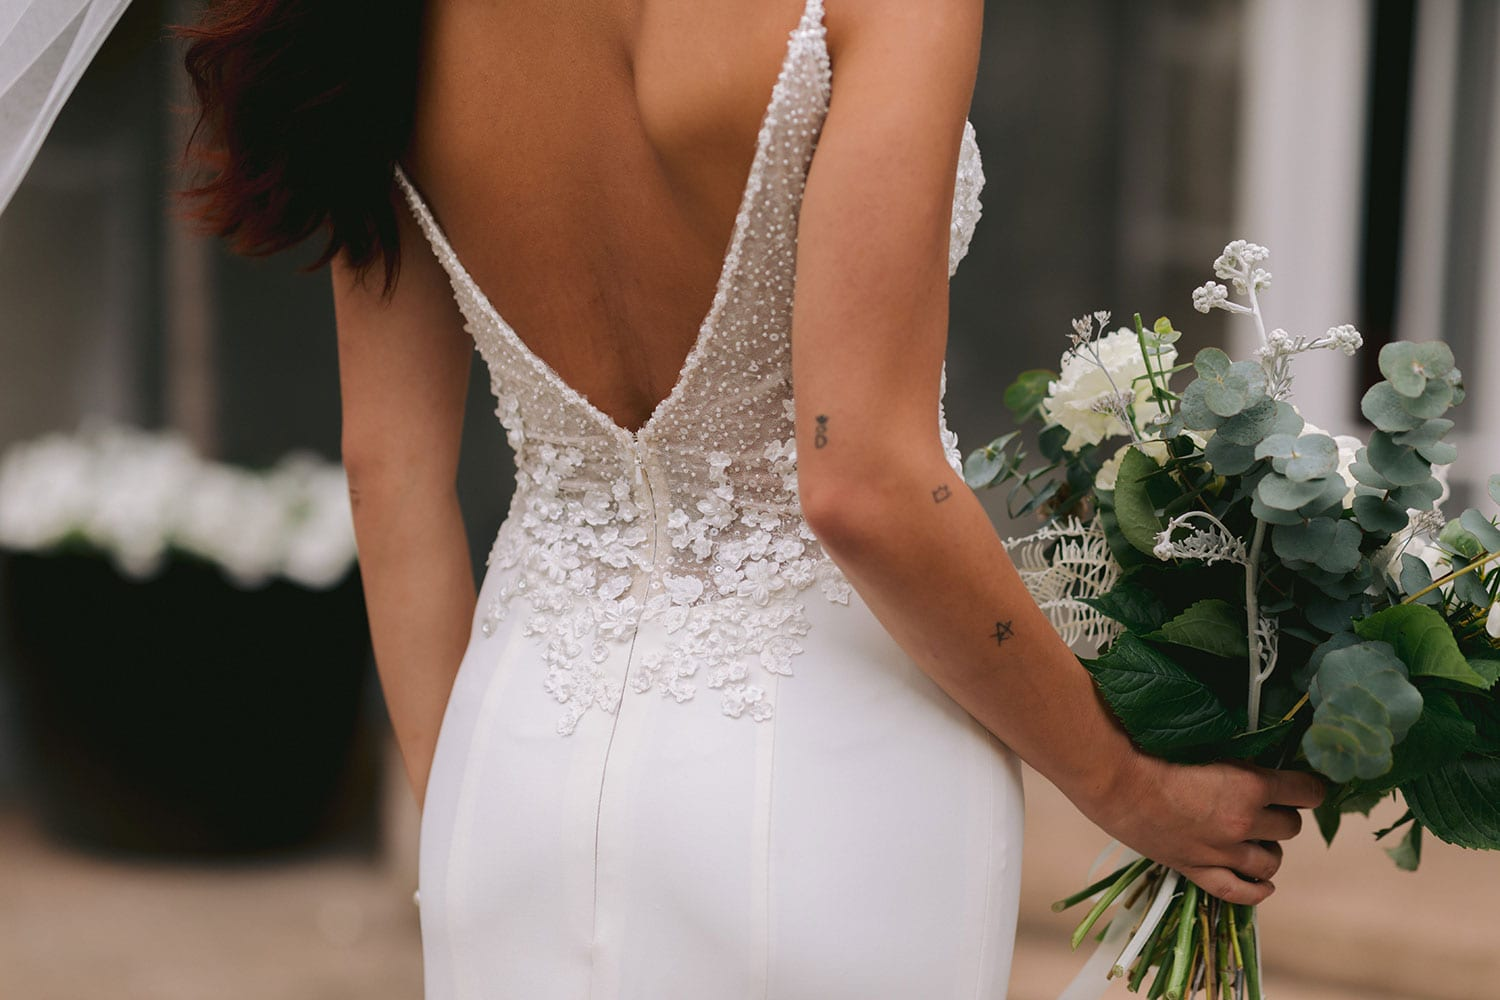 Azure Wedding Gown from Vinka Design - Elegantly tailored trouser combined with a beautiful lace blouse for the Modern Bride. The blouse features a high neck and low back, with in-built camisole, fitted sleeves, & pearl buttons. Model wearing gown , close up of V-back detail.